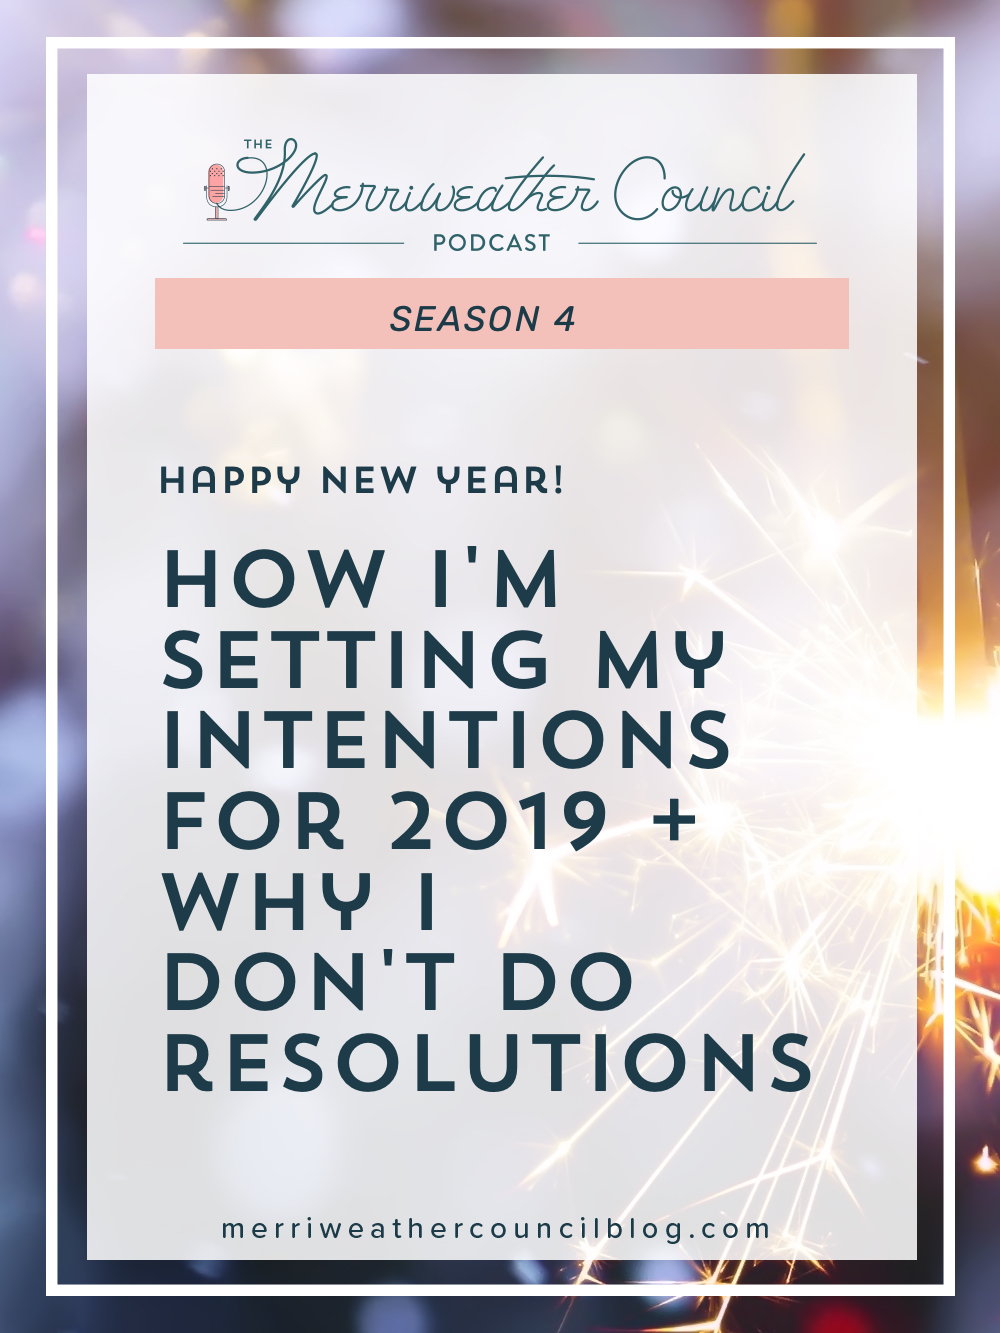 In today's episode we're talking about our new year intentions. I share the word I used to align my actions to in 2018 & why I don't really do resolutions. | The Merriweather Council Podcast